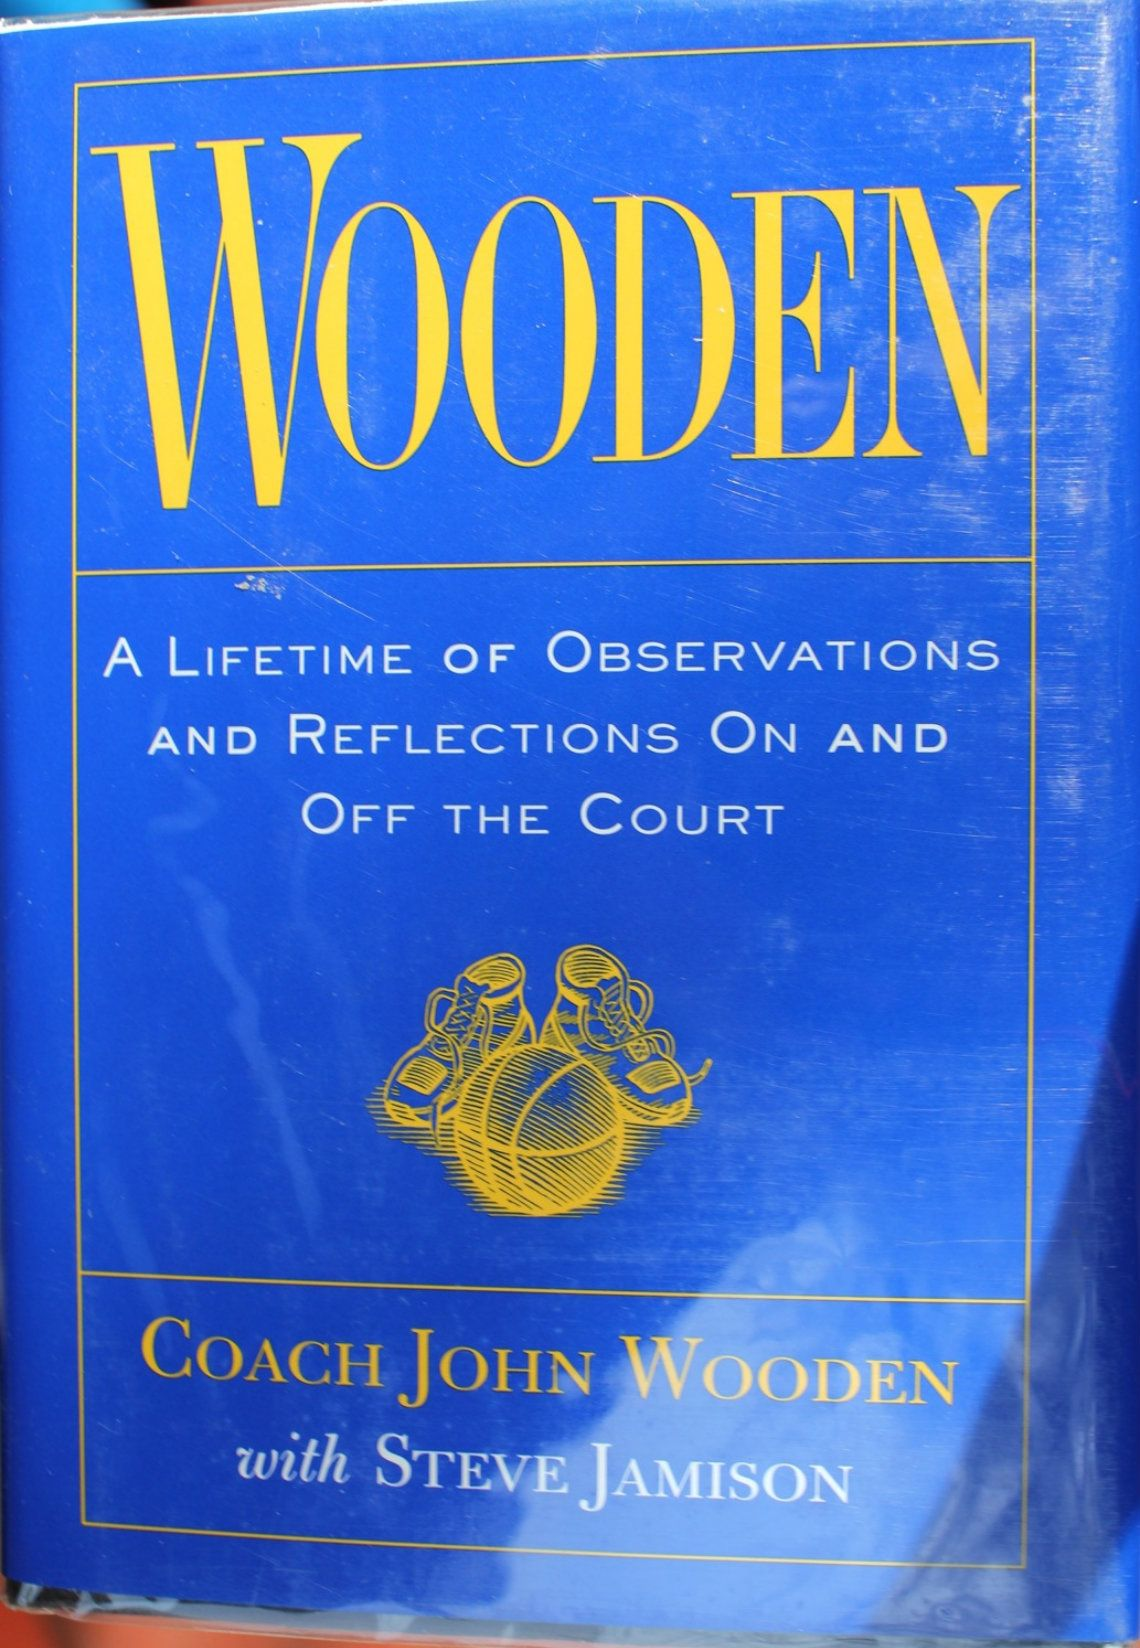 Wooden by John Wooden. Led UCLA to win 10 NCAA championships in 12 years,